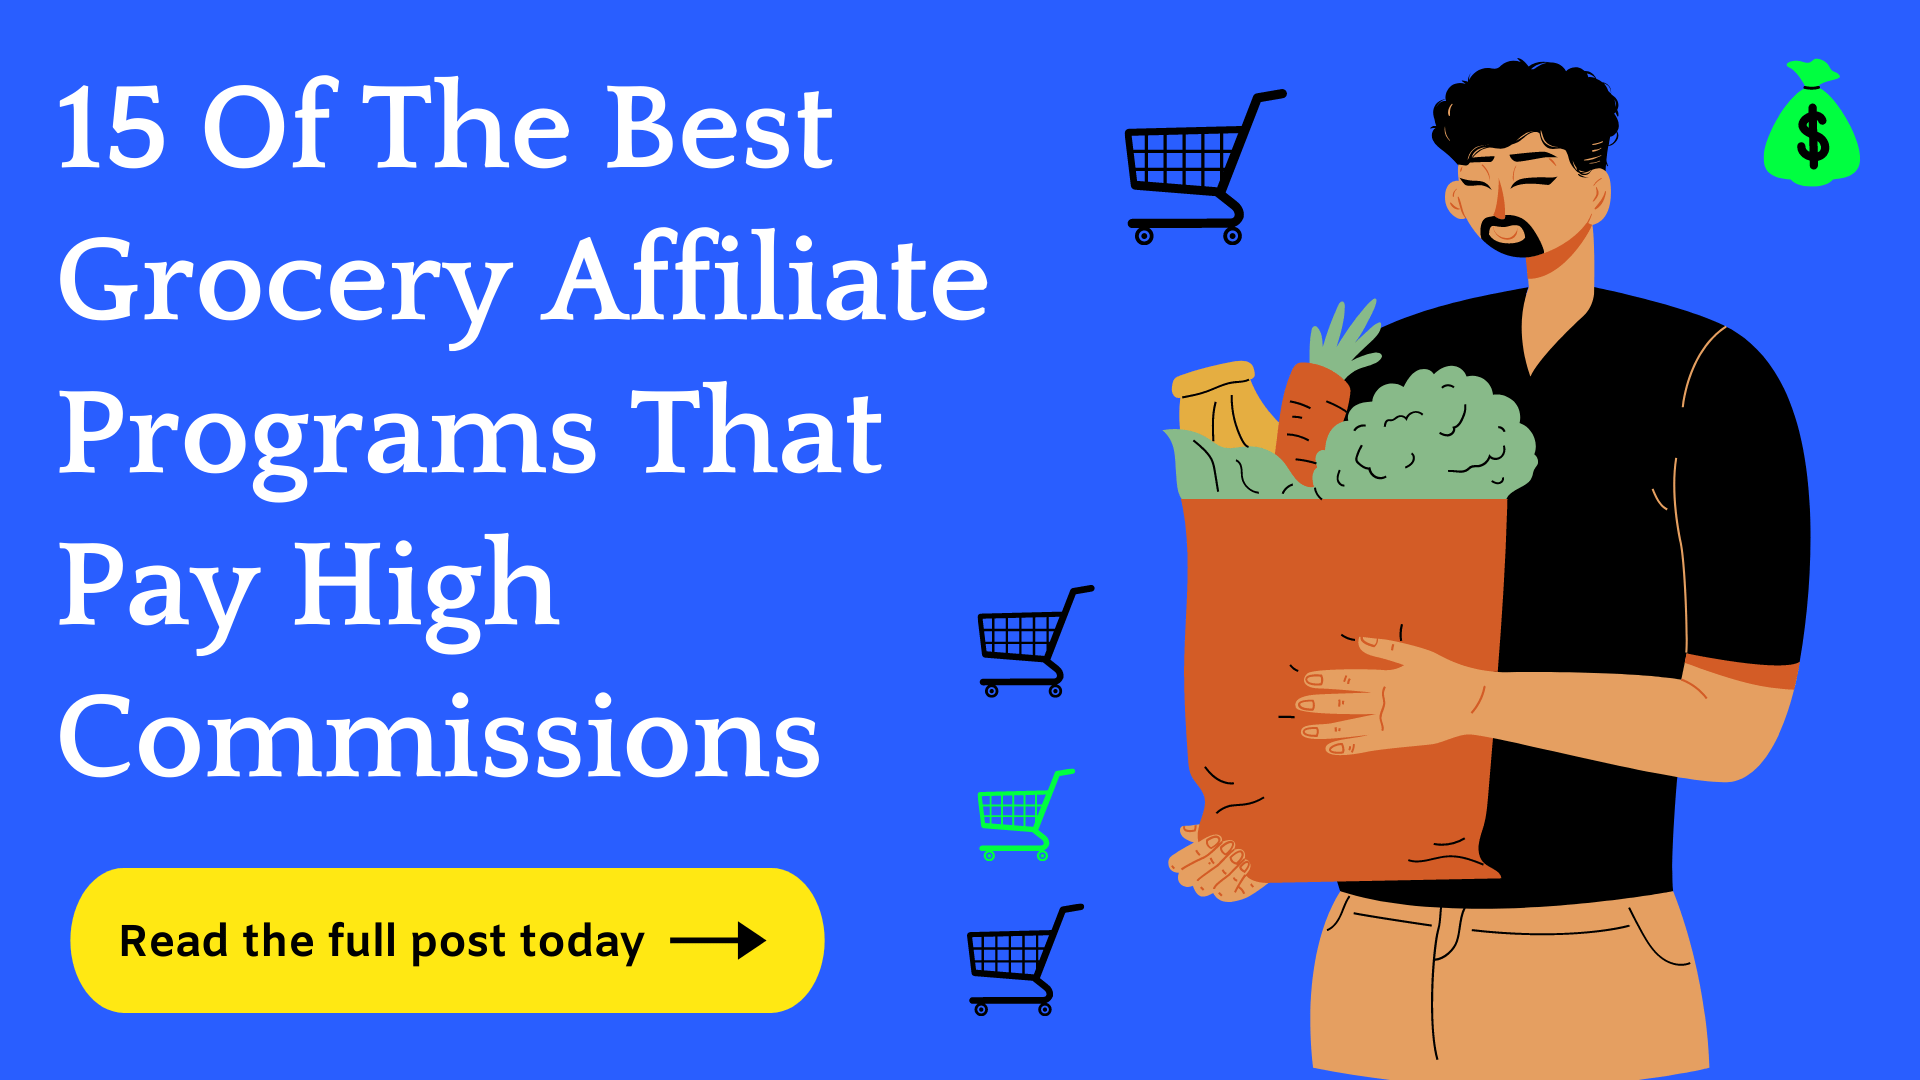 Best grocery affiliate programs